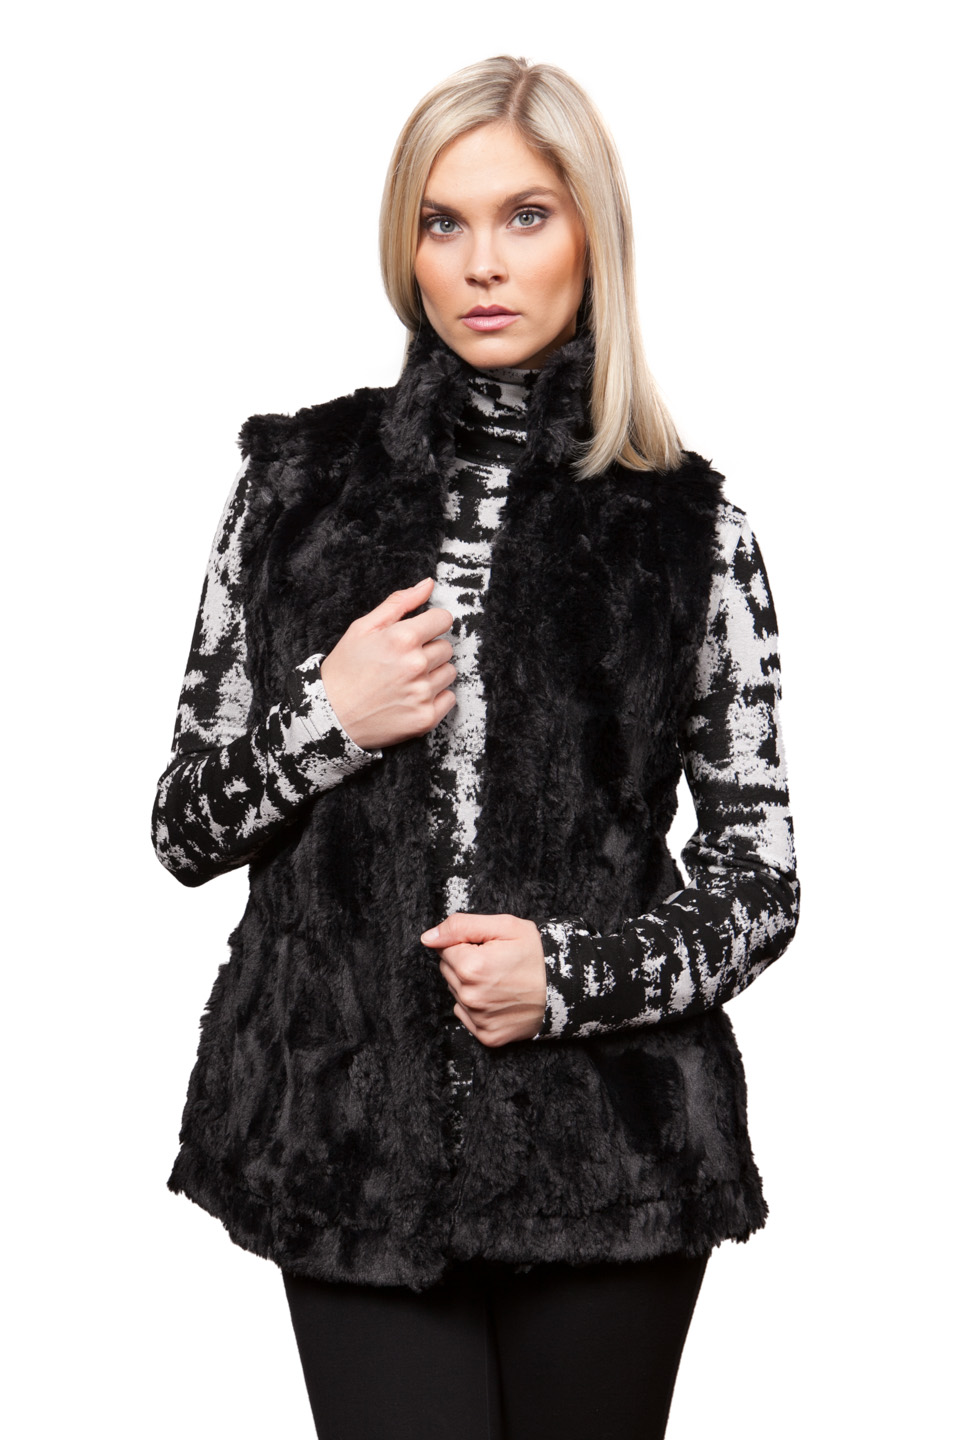 Copy of Style # 75279-16, p. 15<br>Faux Fur <br>Color: Black, 2 colors<br>w/ Cashmerette Separates p. 7